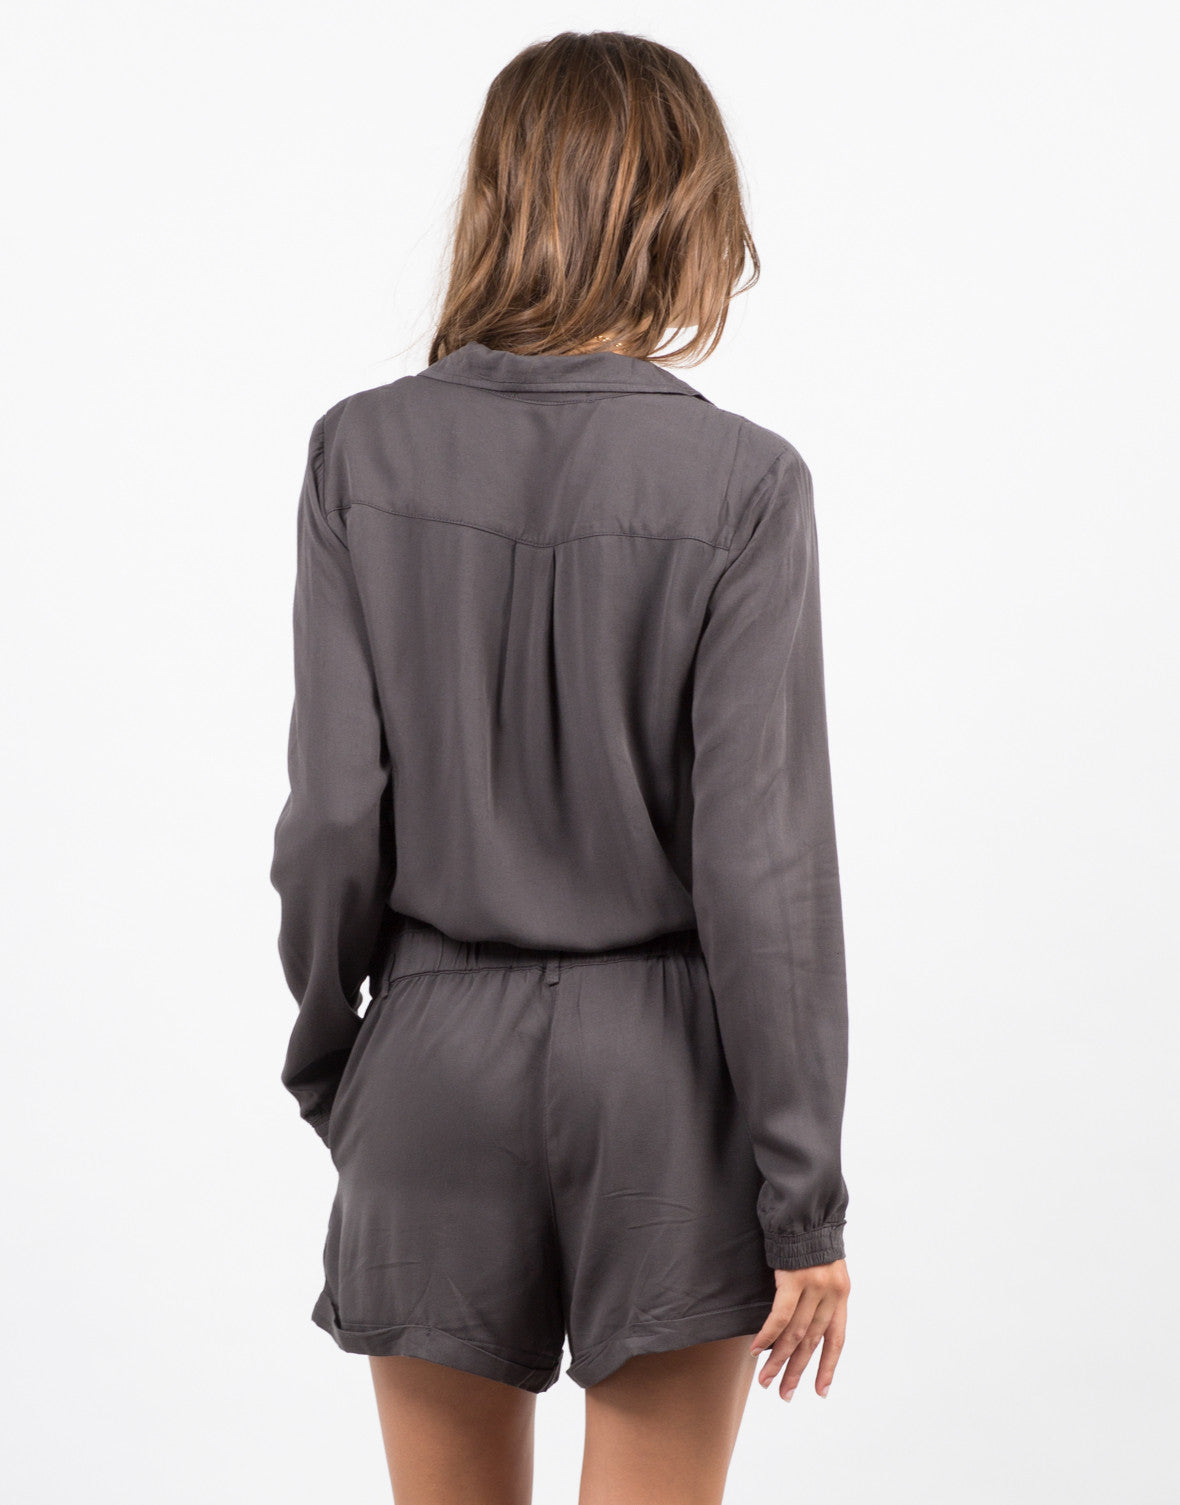 Back View of Woven Button Front Romper